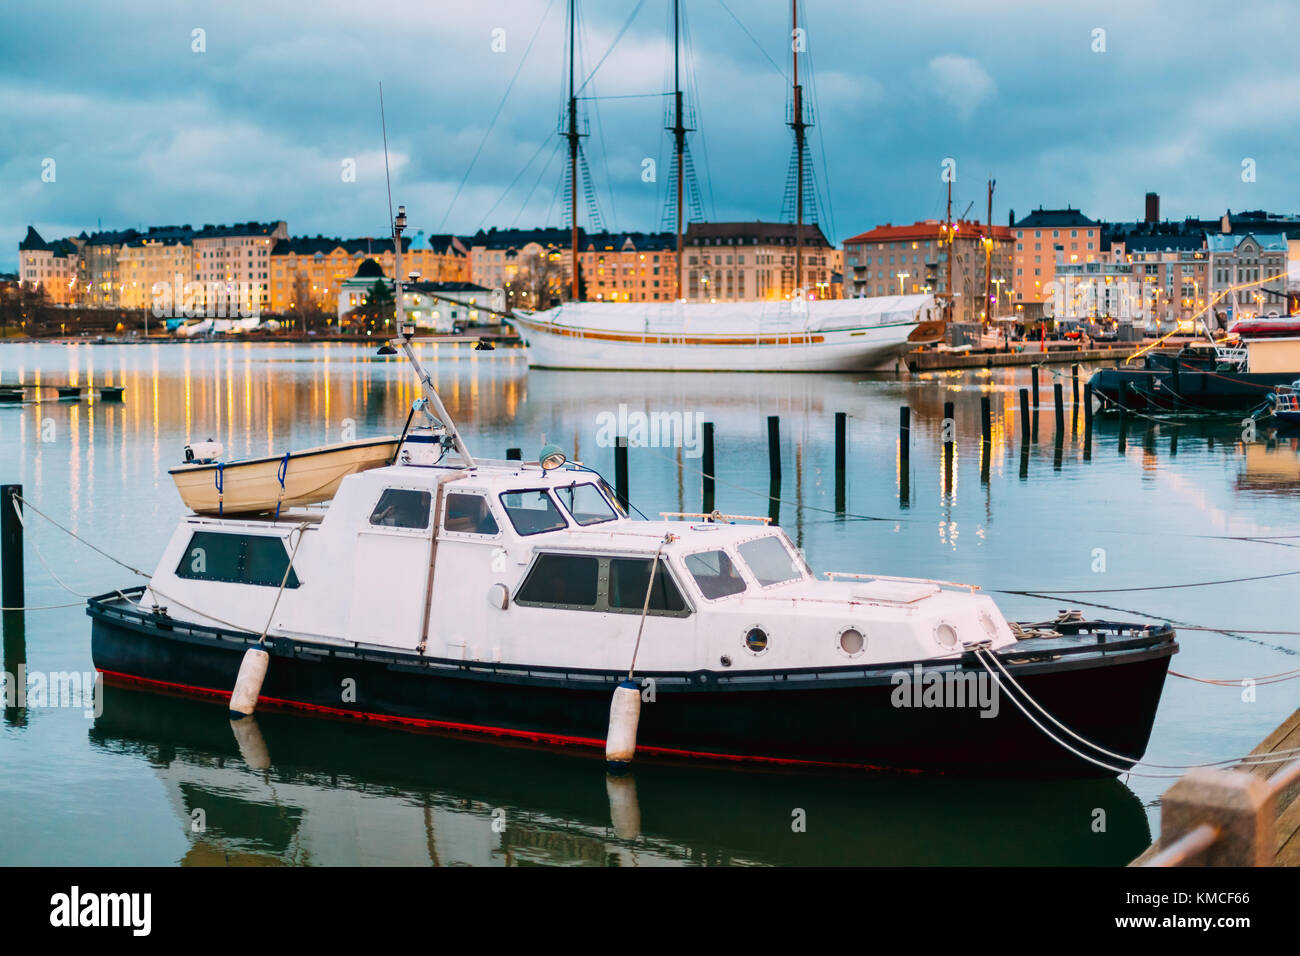 Helsinki, Finland. Marine Boat, Powerboat In Evening Illumination At Pier. - Stock Image